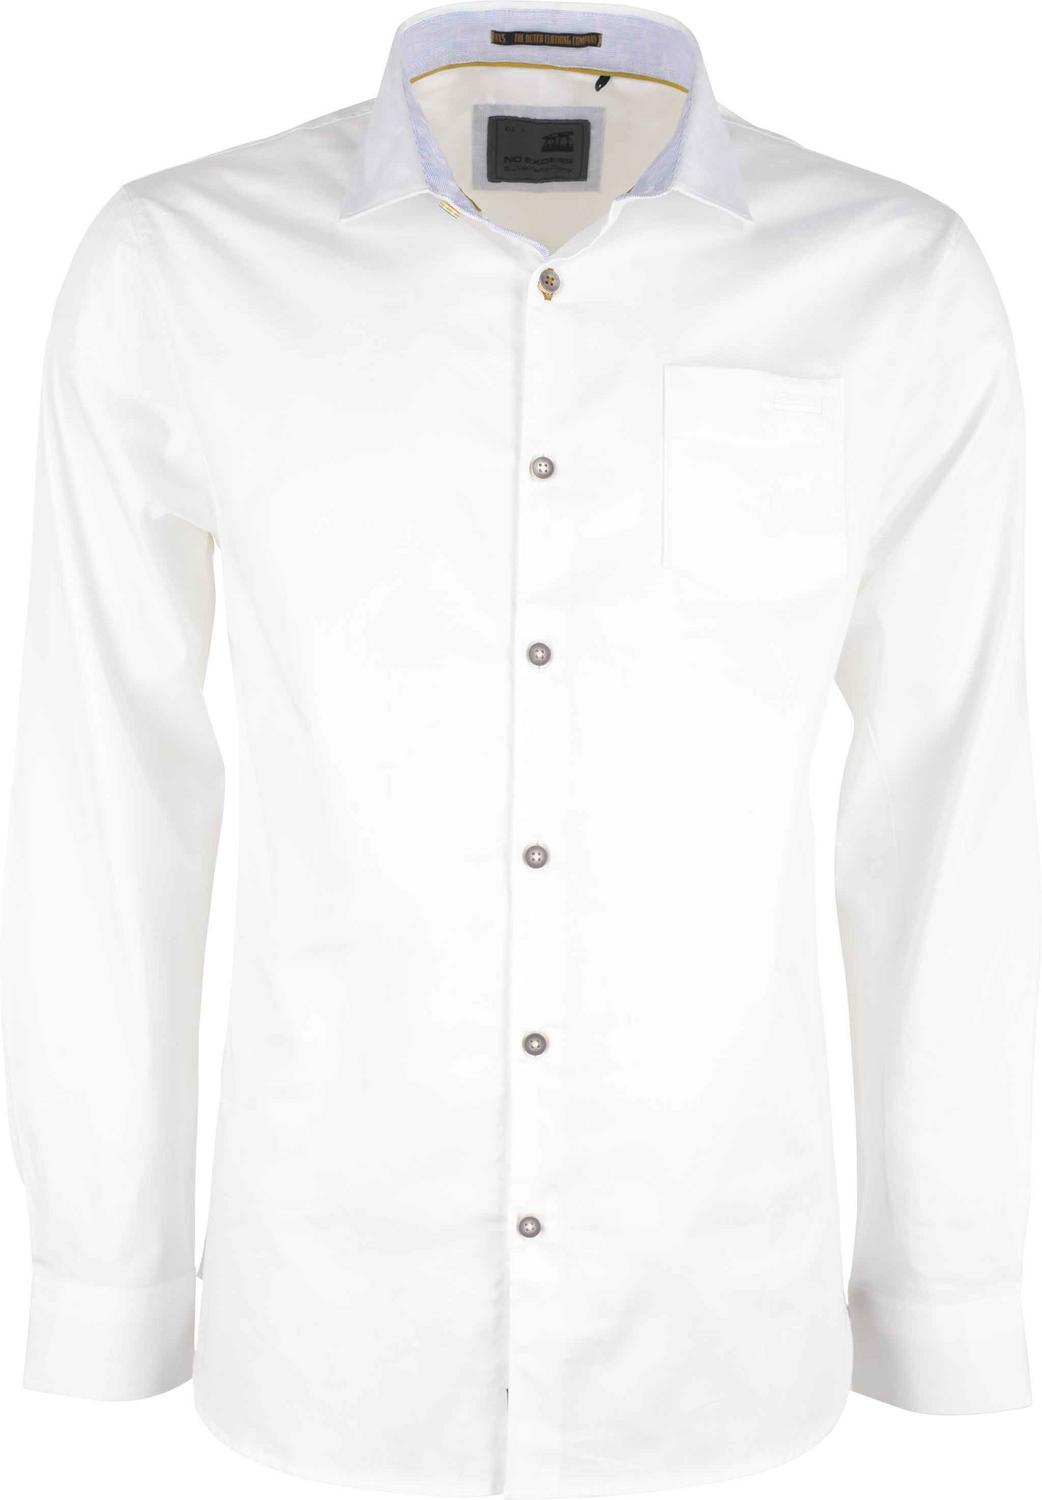 Satin Stretch Shirt With Chest Pocket